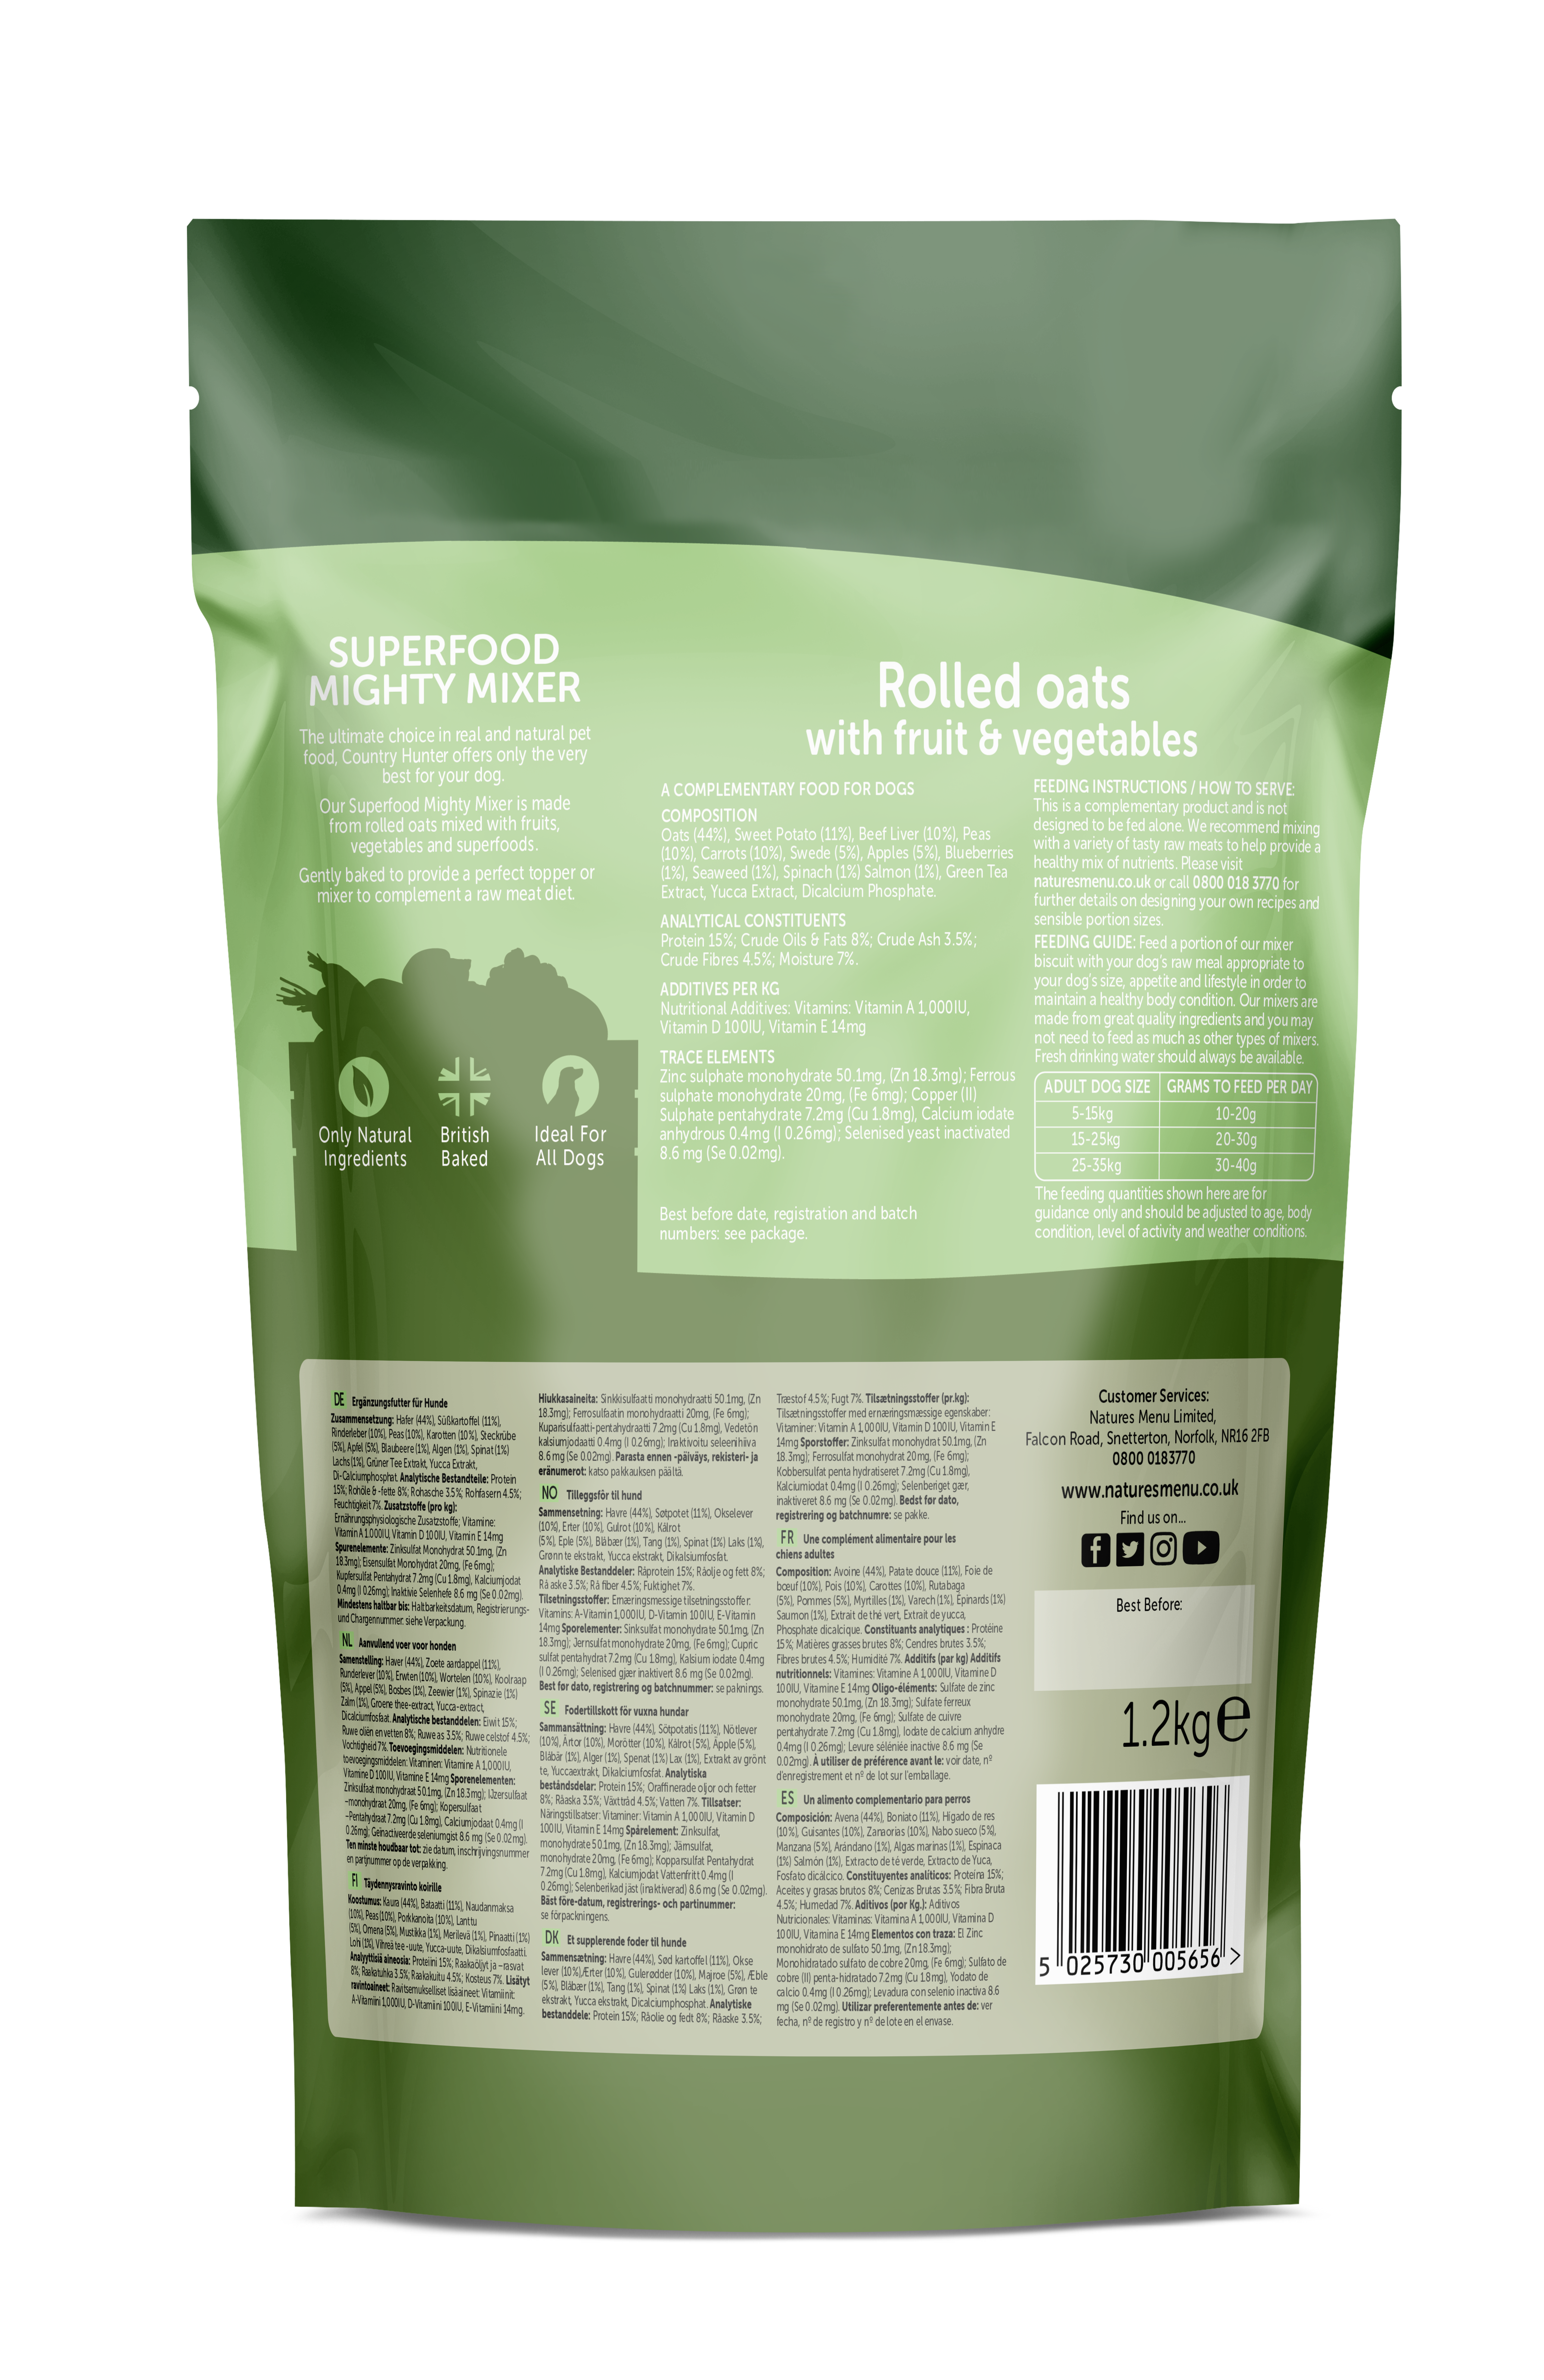 Country Hunter Superfood Mighty Mixer Rolled Oats with Fruit & Vegetables 1.2kg Back